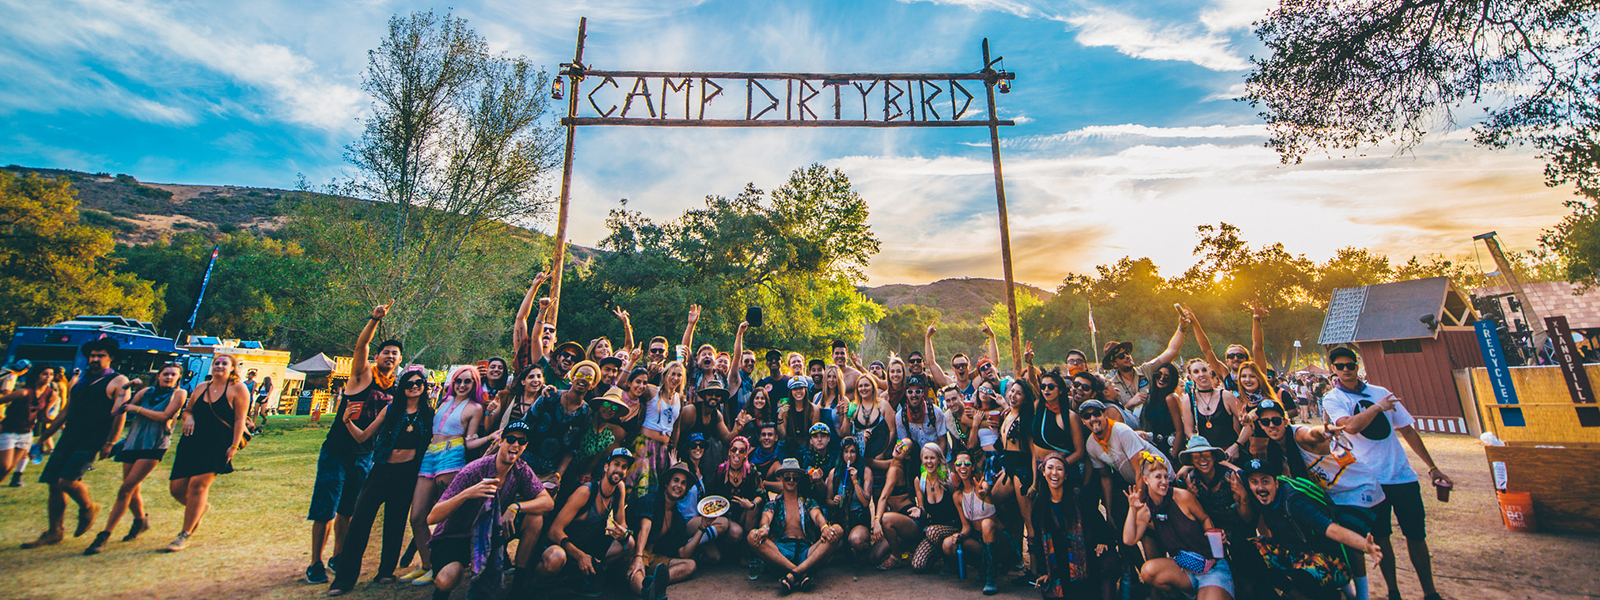 squad-at-campout16-juliana-bernstein-get-tiny